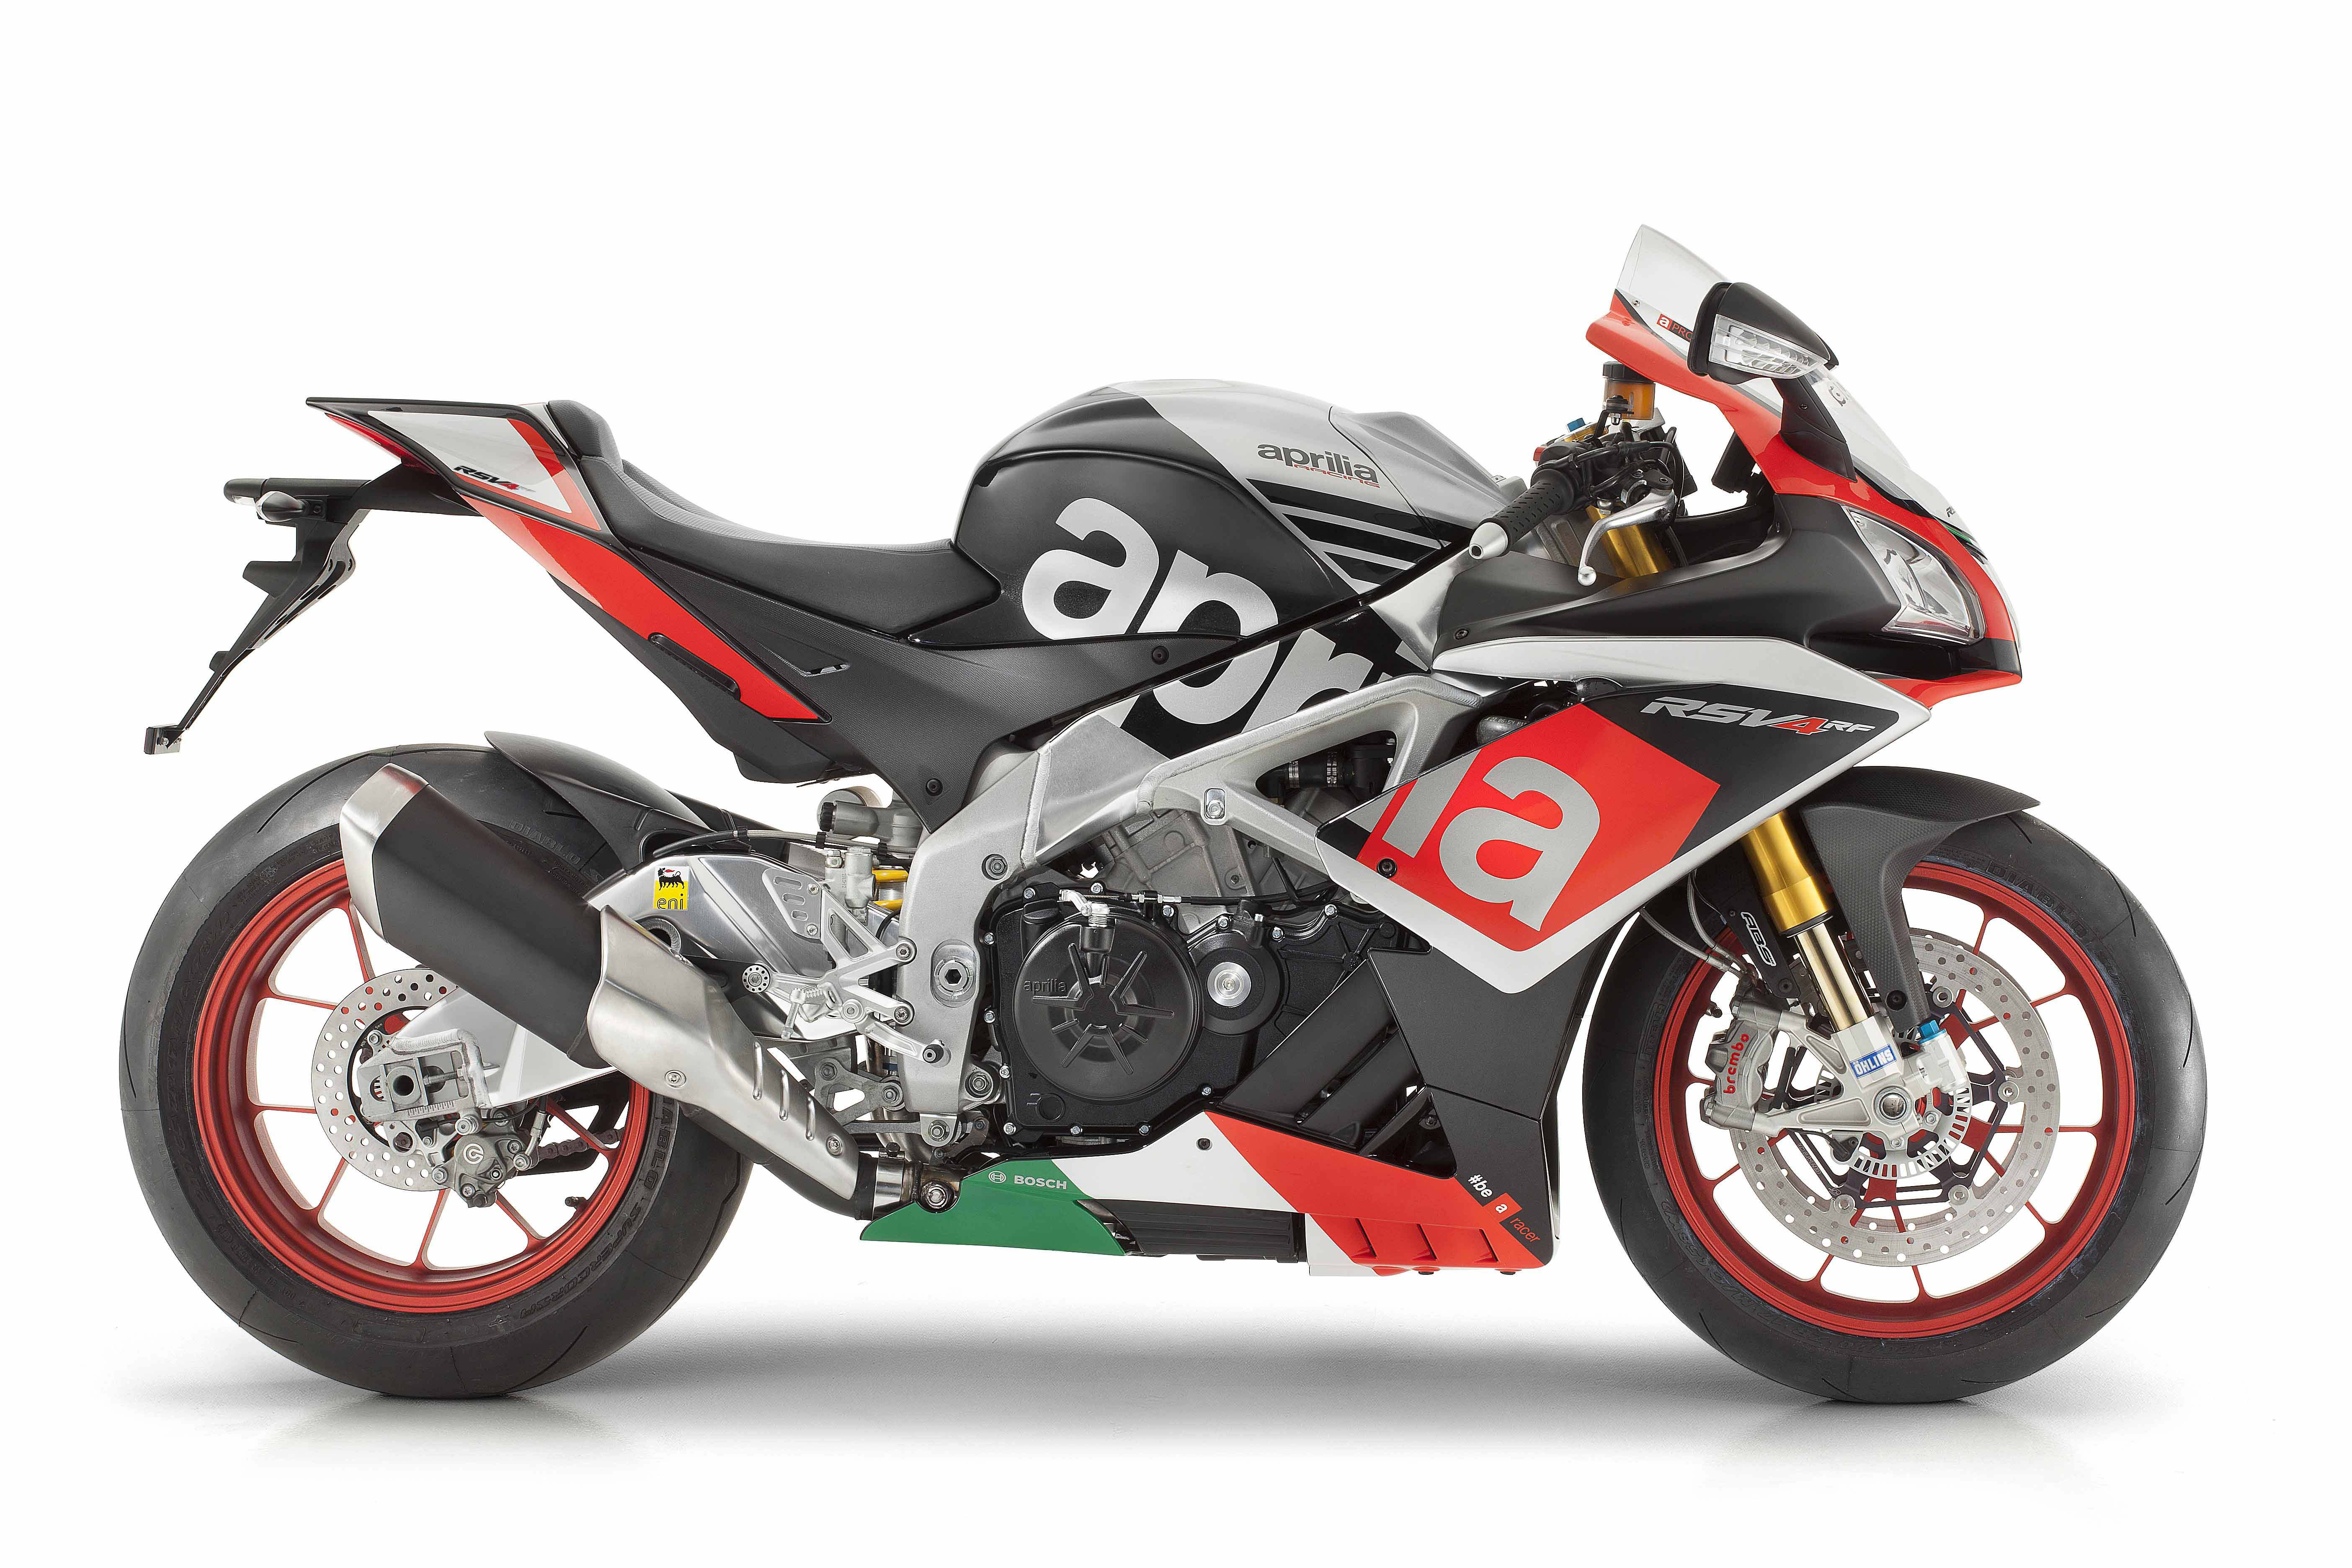 Top 10 most powerful bikes of 2015